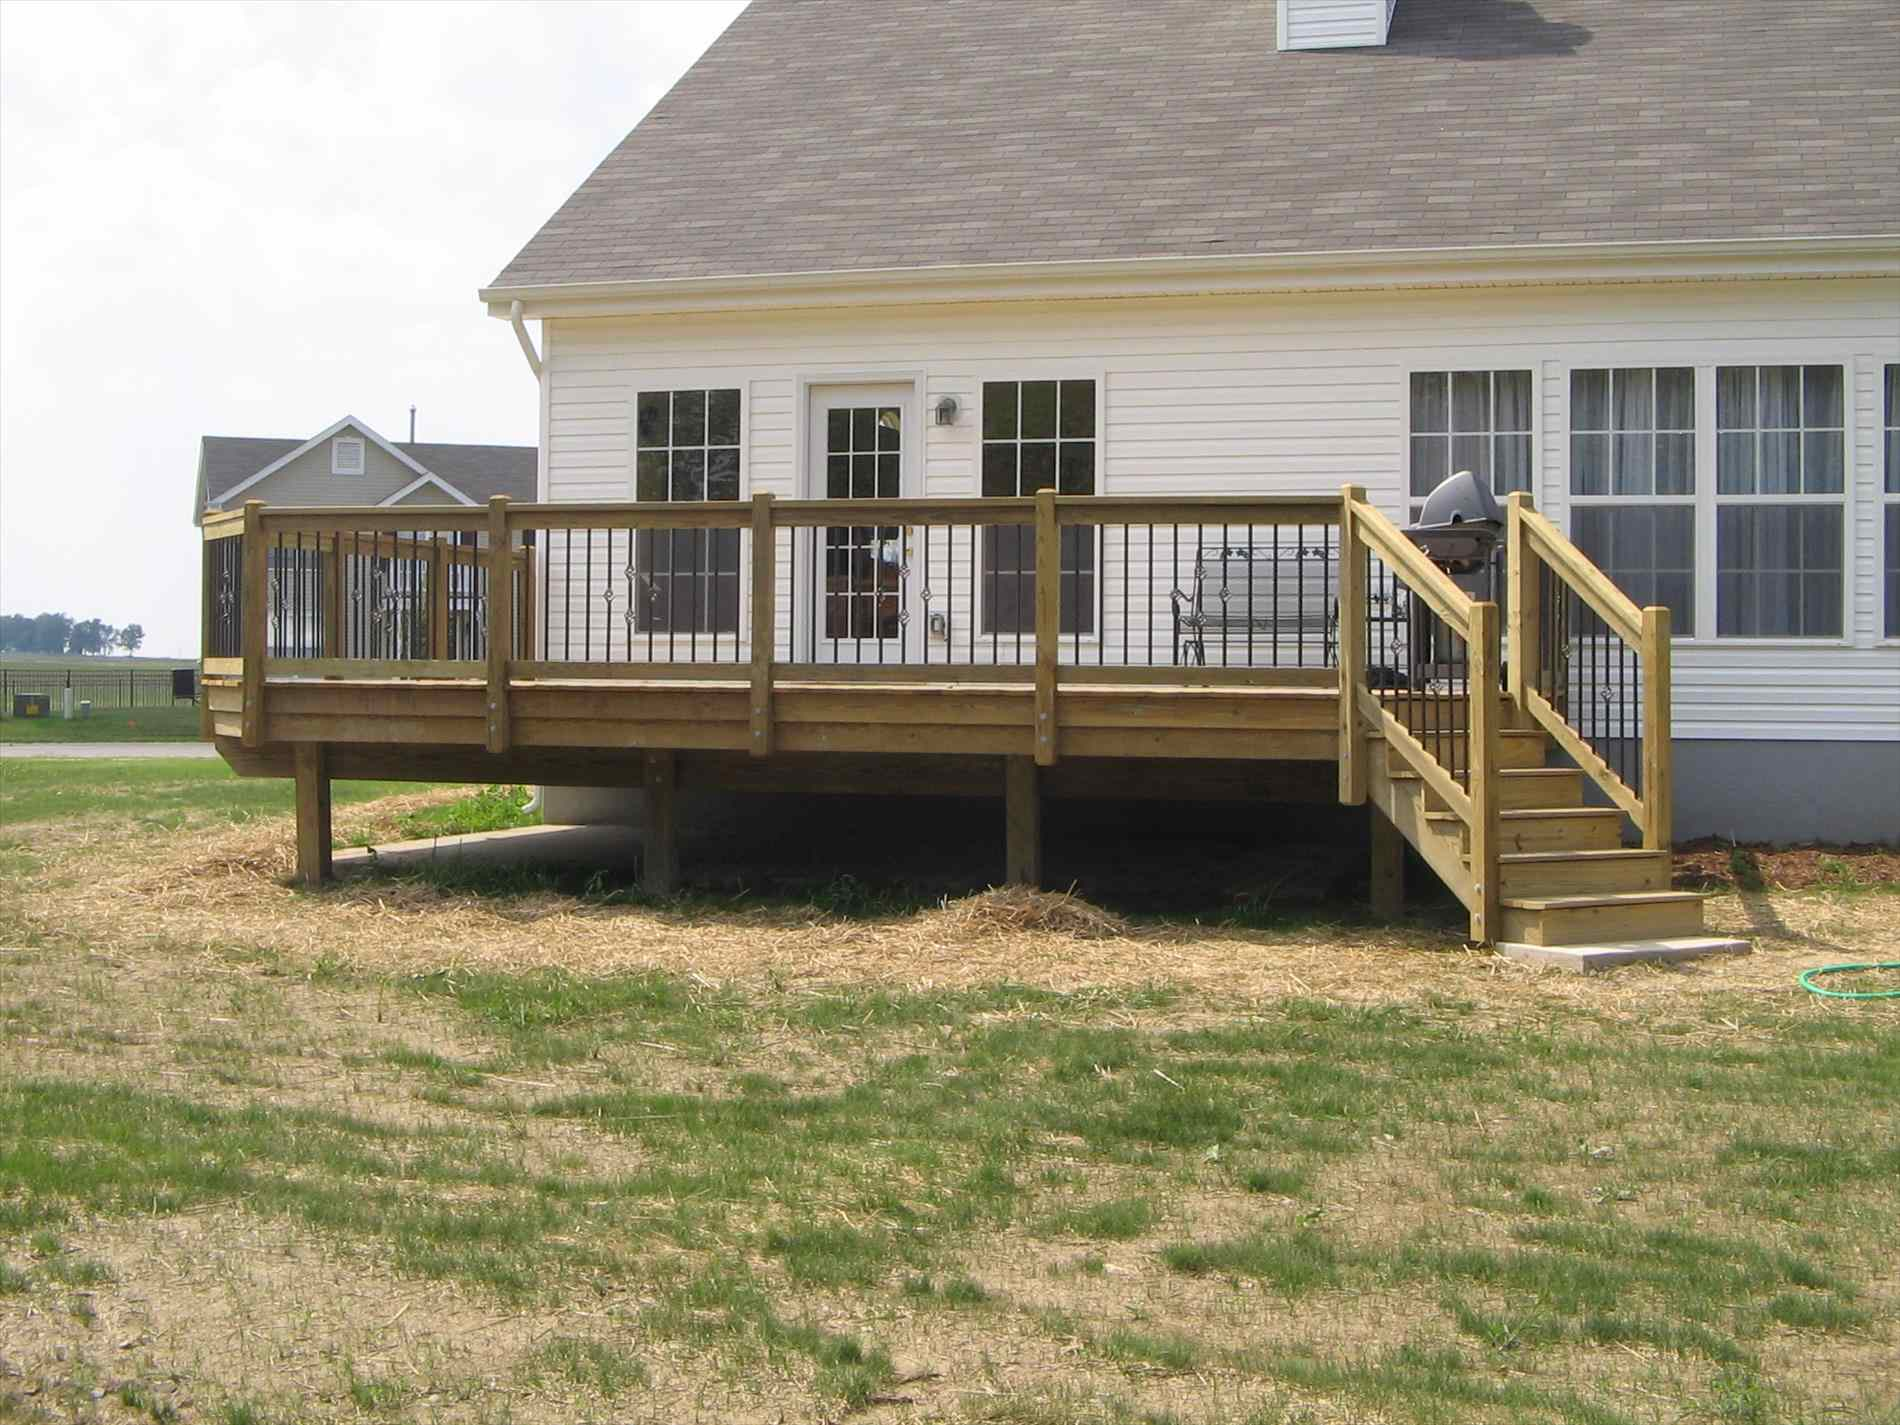 Installing Composite Decking | Composite Decking Installation Guide | Lowes Deck Installation